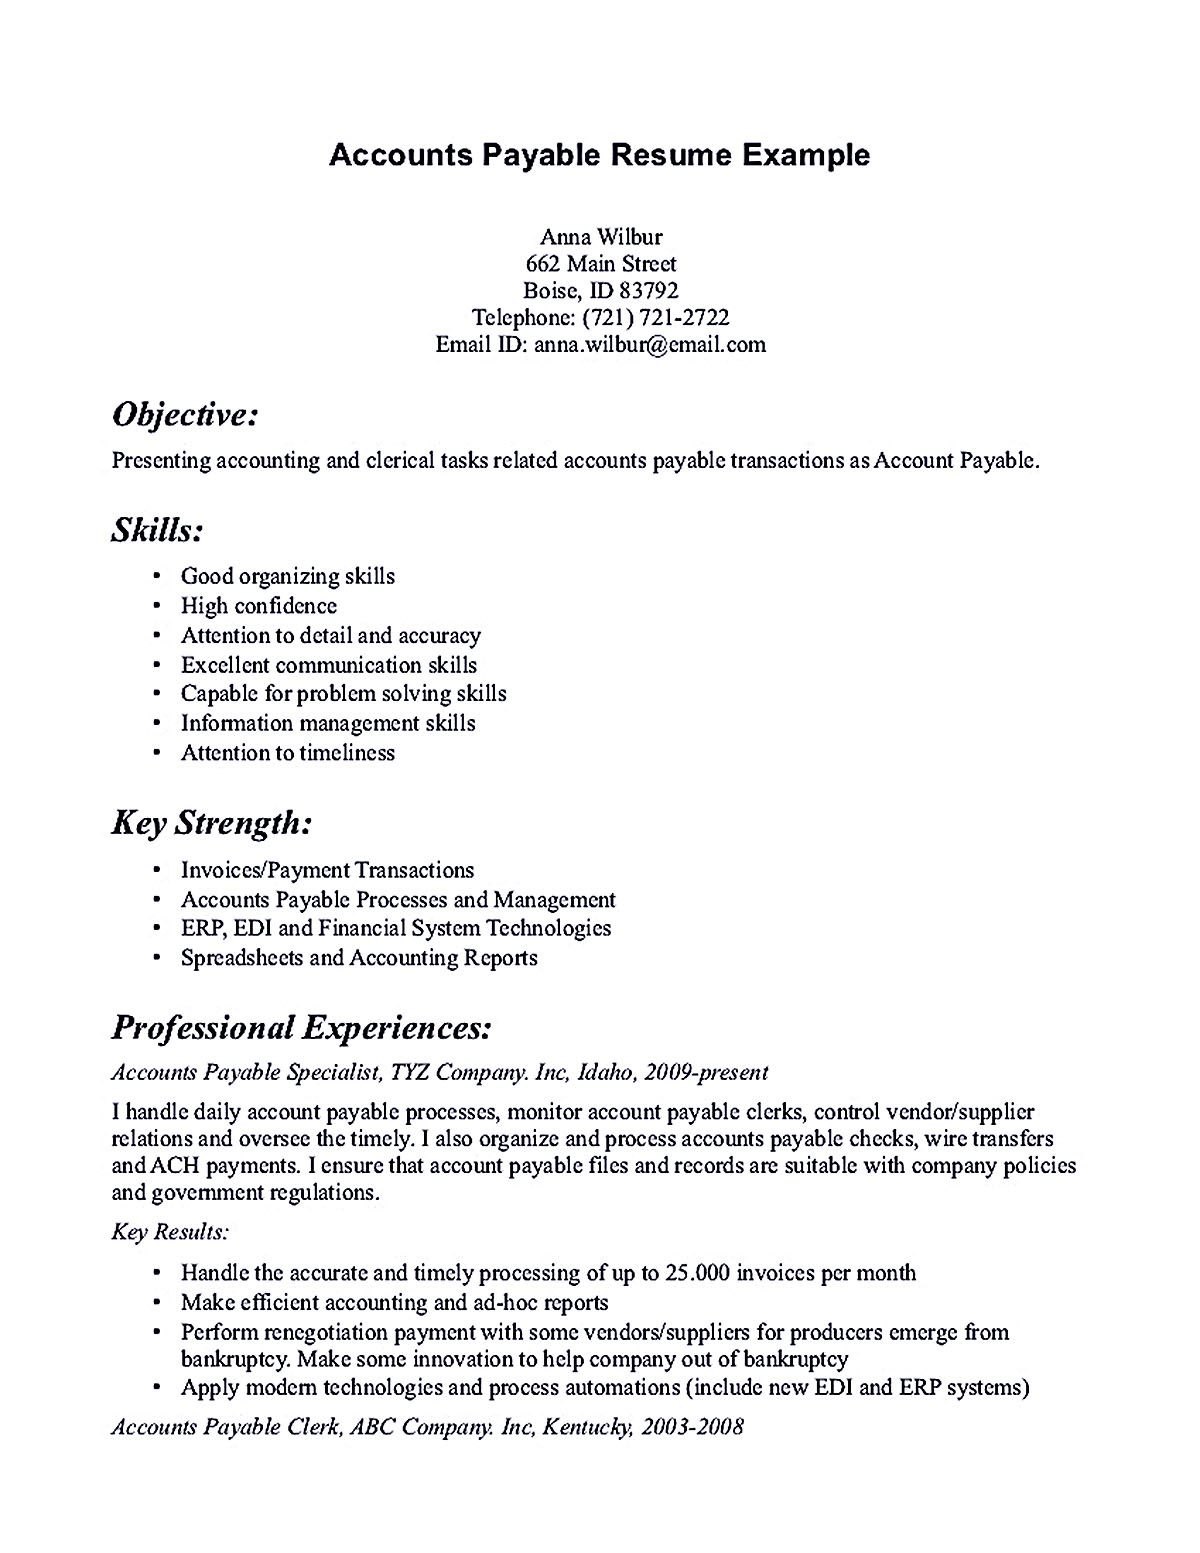 Excellent Communication Skills Resume Example Excellent Communication And Interpersonal Skills Resume